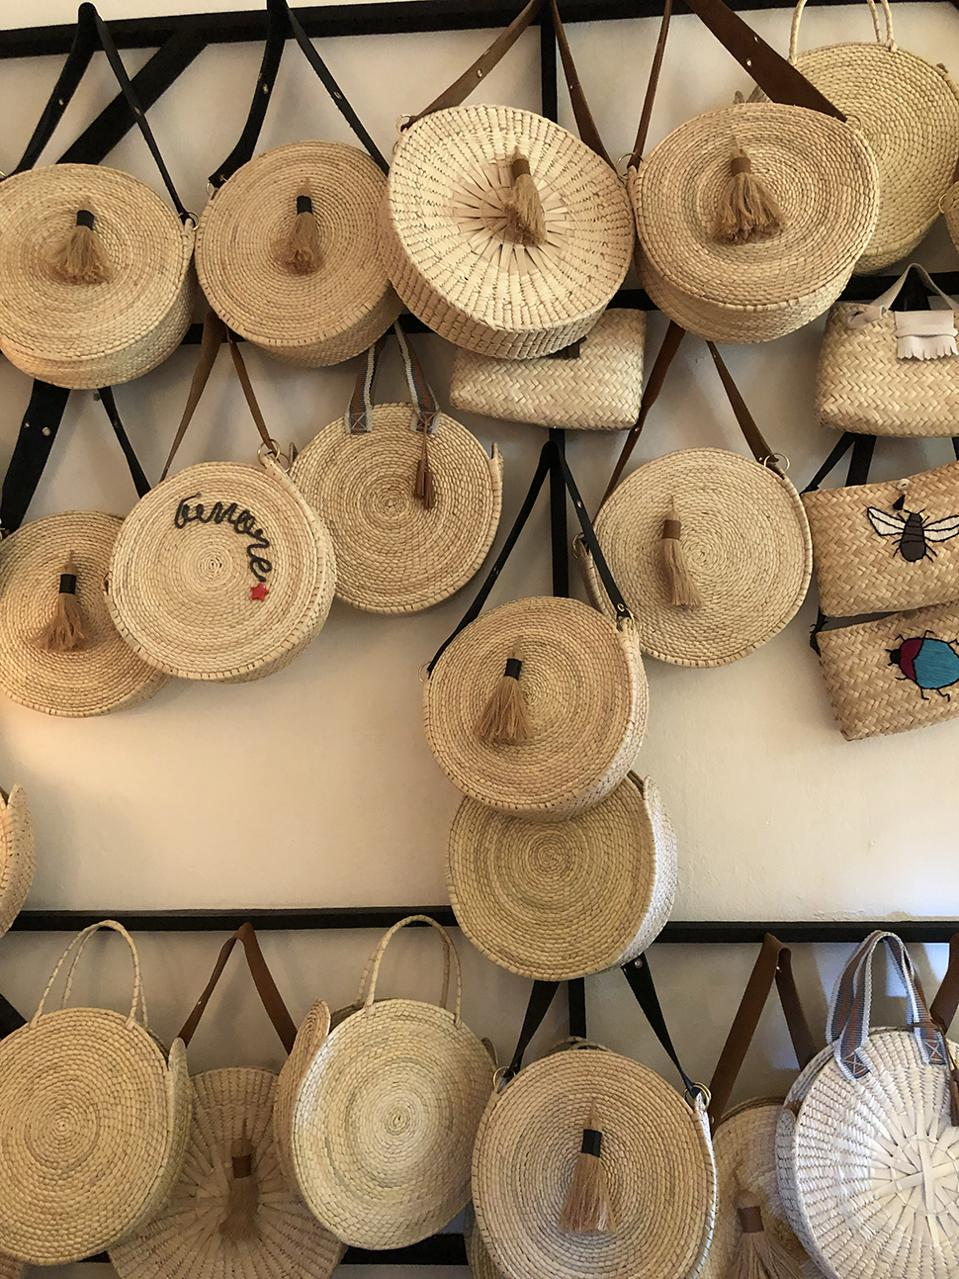 Hand-Woven Bags from Project Beatriz